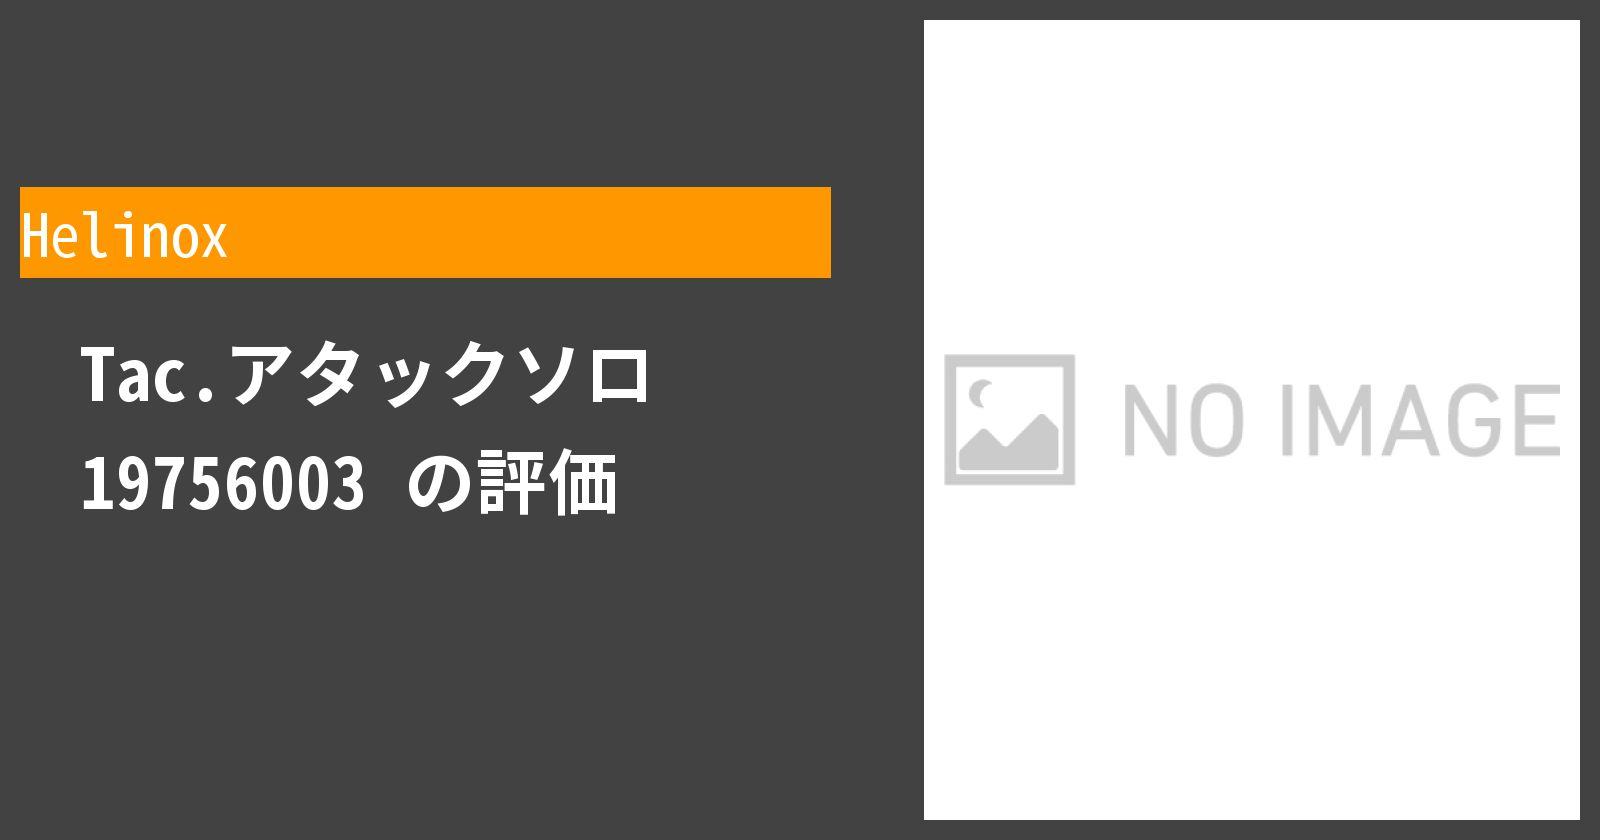 Tac.アタックソロ 19756003を徹底評価